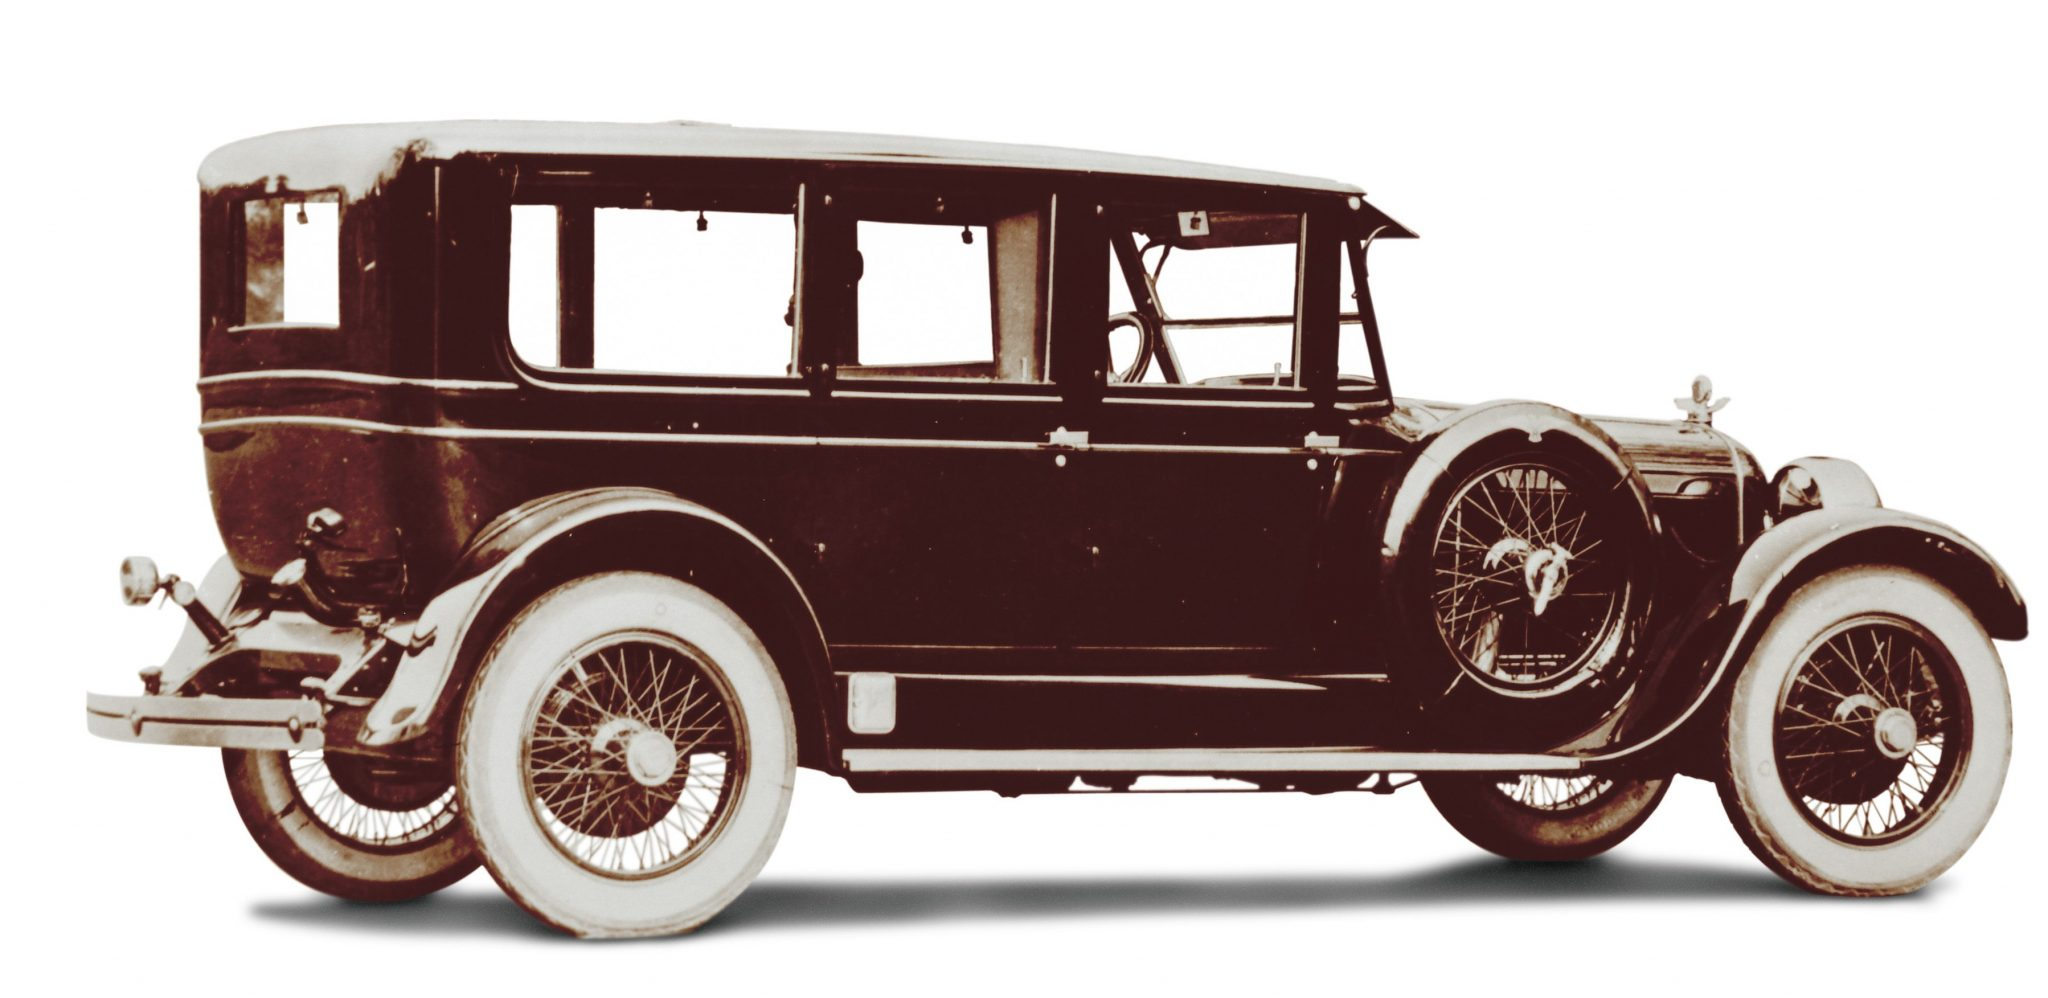 In 1924 Duesenberg added a longer 141-inch wheelbase chassis for formal coachwork, which accommodated such luxurious styling as this Deluxe Limousine by Rubay. Priced at $7,800 in 1924 it was $3,200 more than Cadillac's Type V-63 Limousine and better than double the price of Cadillac's Seven-Passenger Formal Sedan.